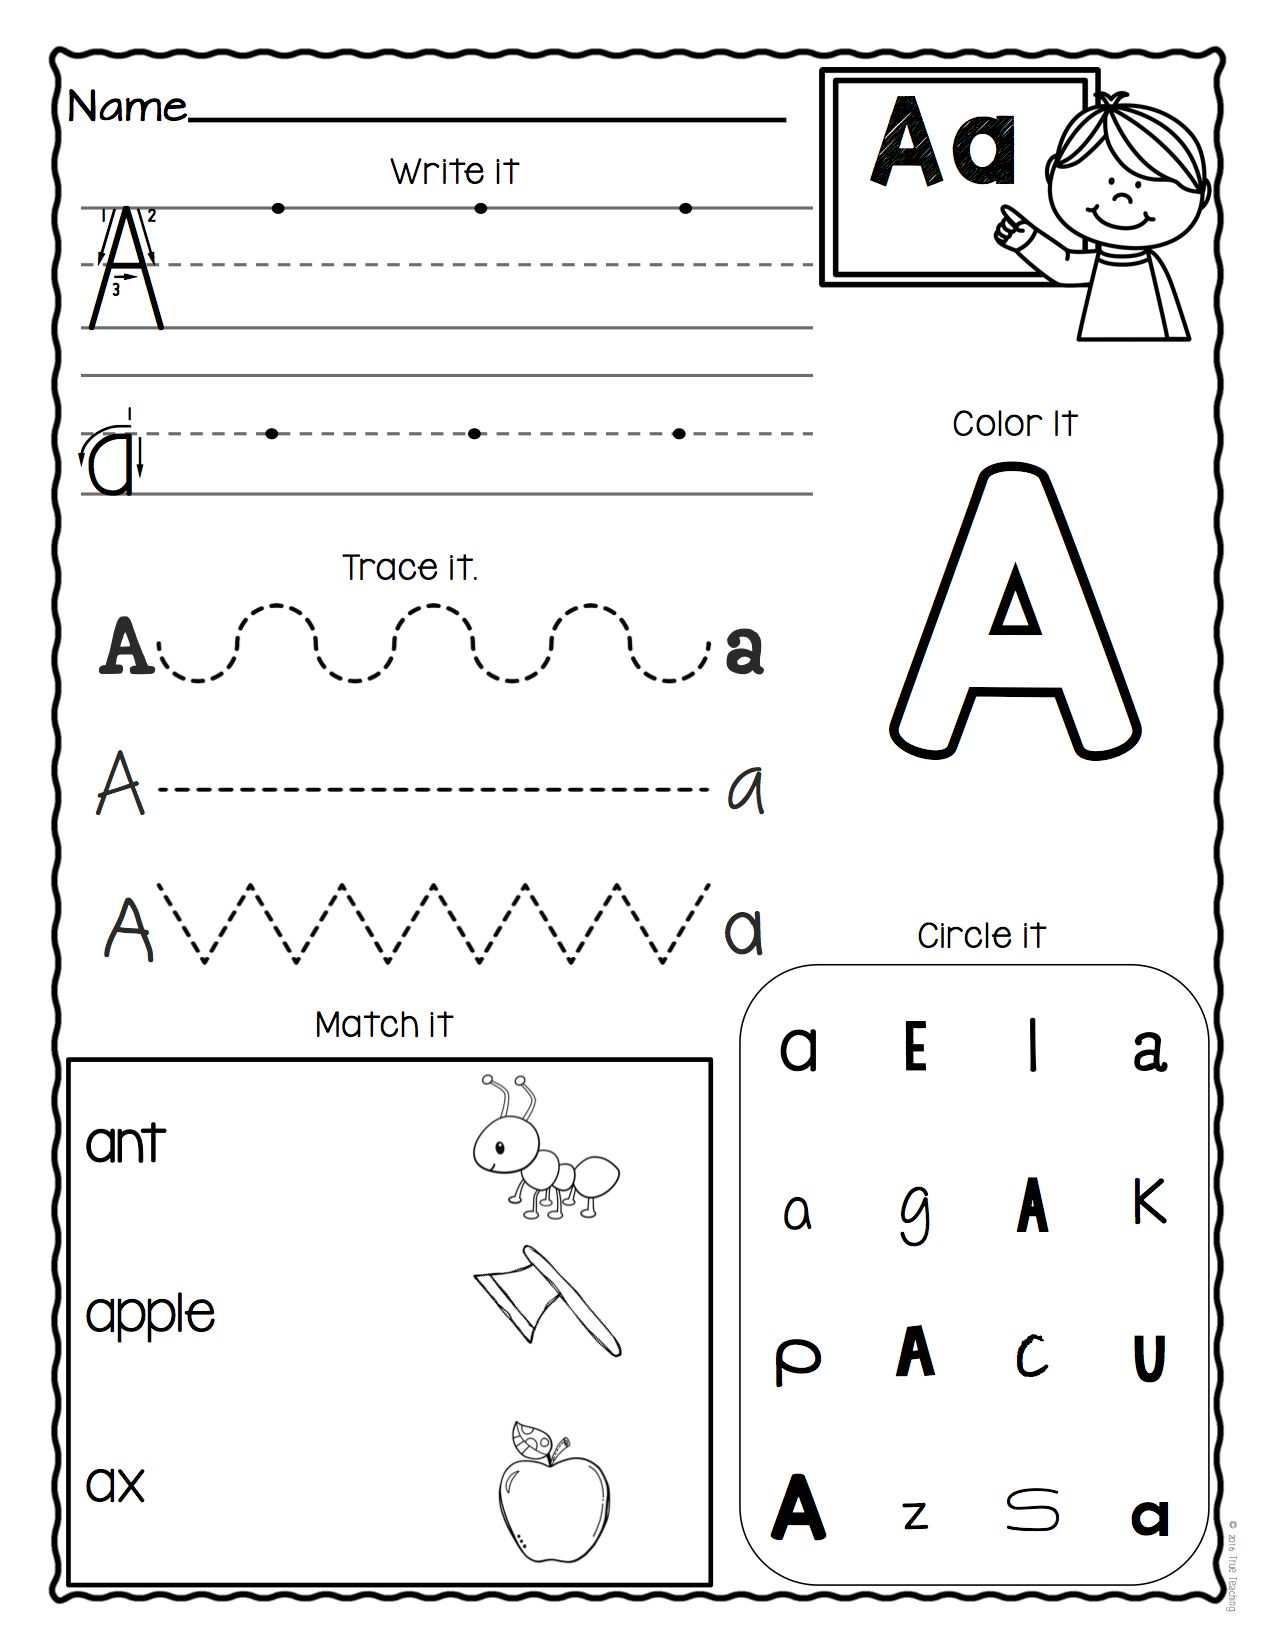 A Z Letter Worksheets (set 3) Educational Finds And Teaching Teaching Sequencing Worksheets A Z Letter Worksheets By True Teaching